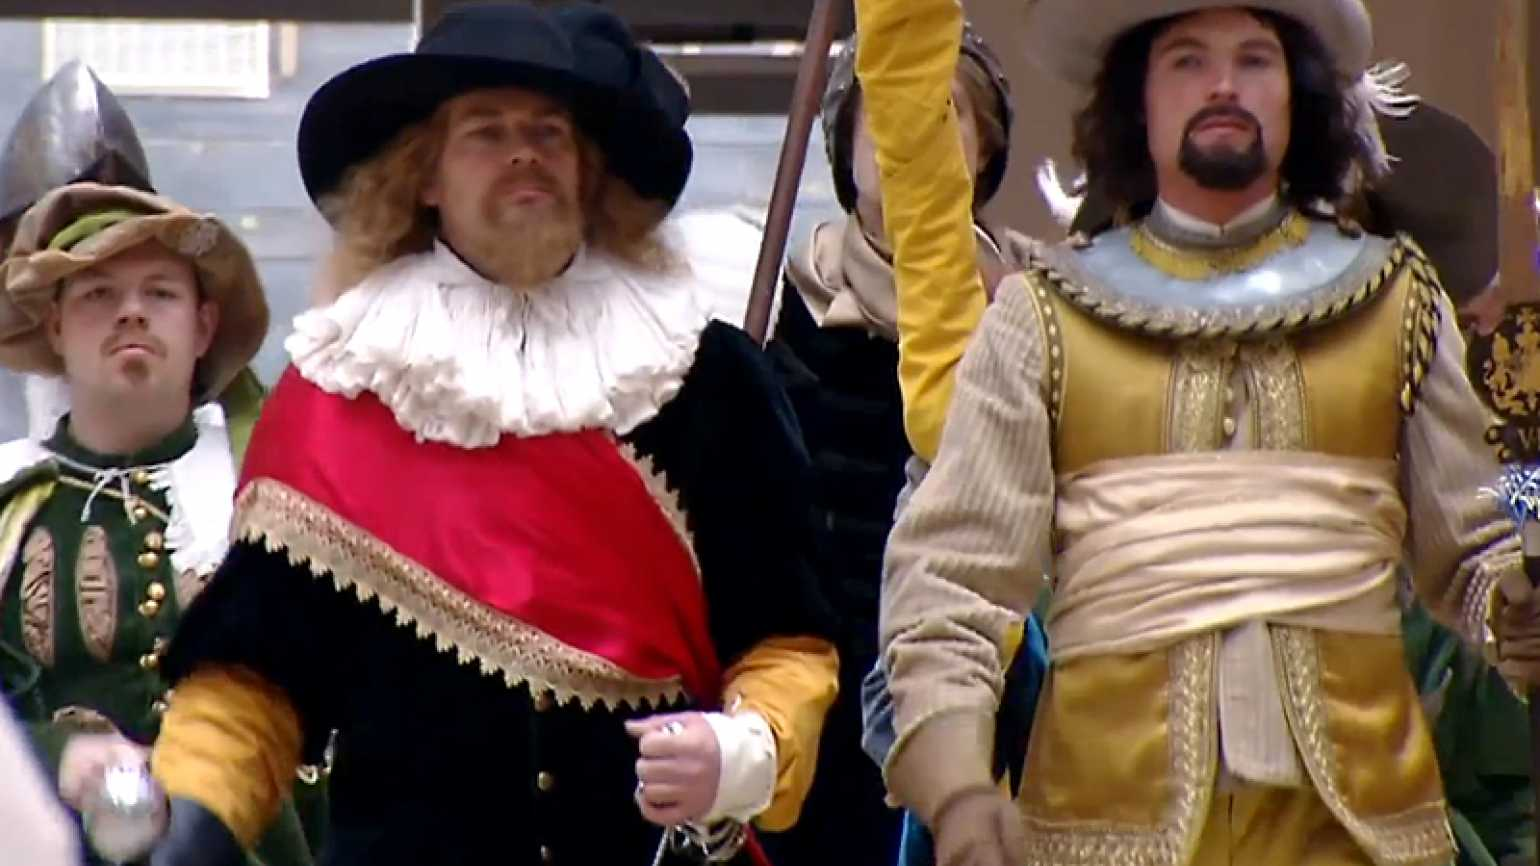 Dutch flash mob members in a period attire